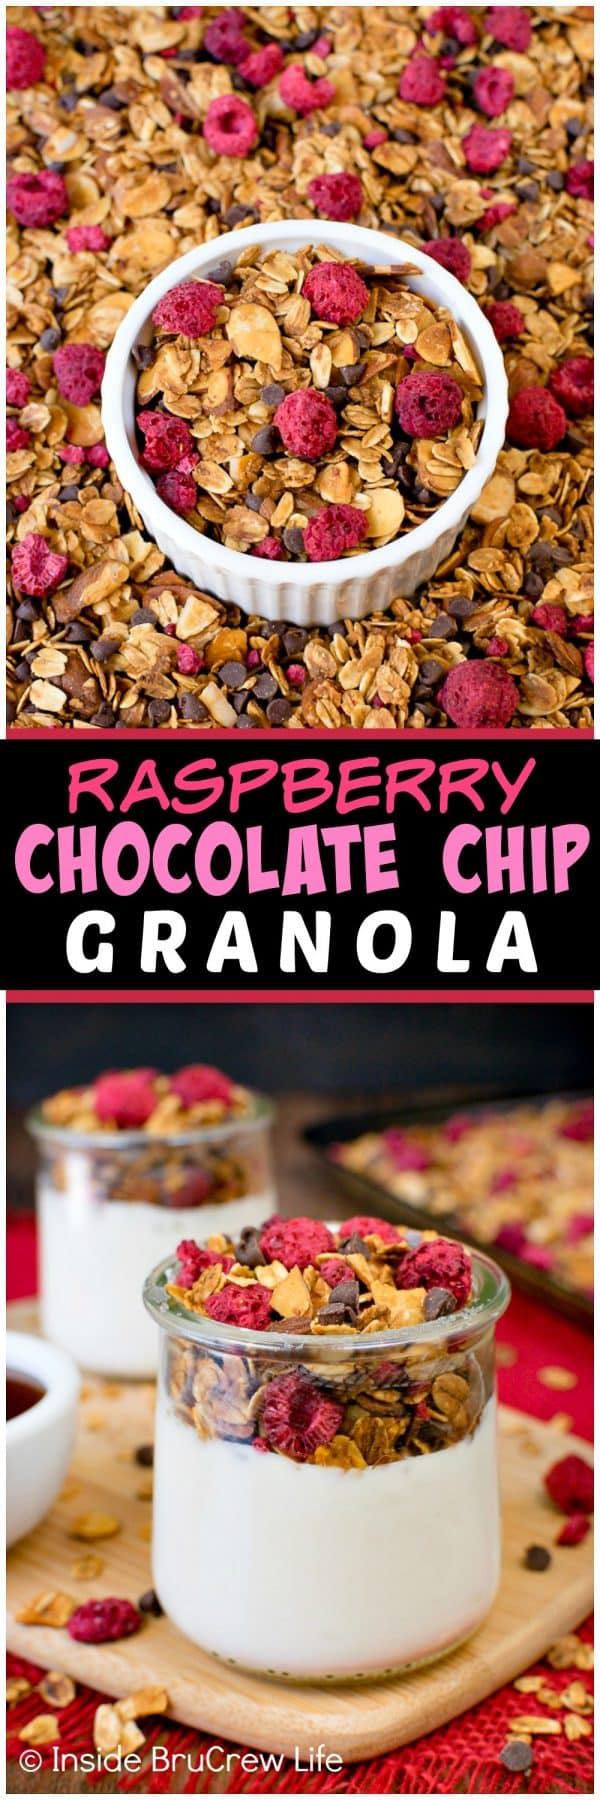 Raspberry Chocolate Chip Granola - this easy homemade granola is full of chocolate chips, raspberries, and almonds. Make this granola for cereal or yogurt parfaits. #breakfast #granola #homemade #healthy #raspberry #chocolate #cereal #parfaits #yogurt